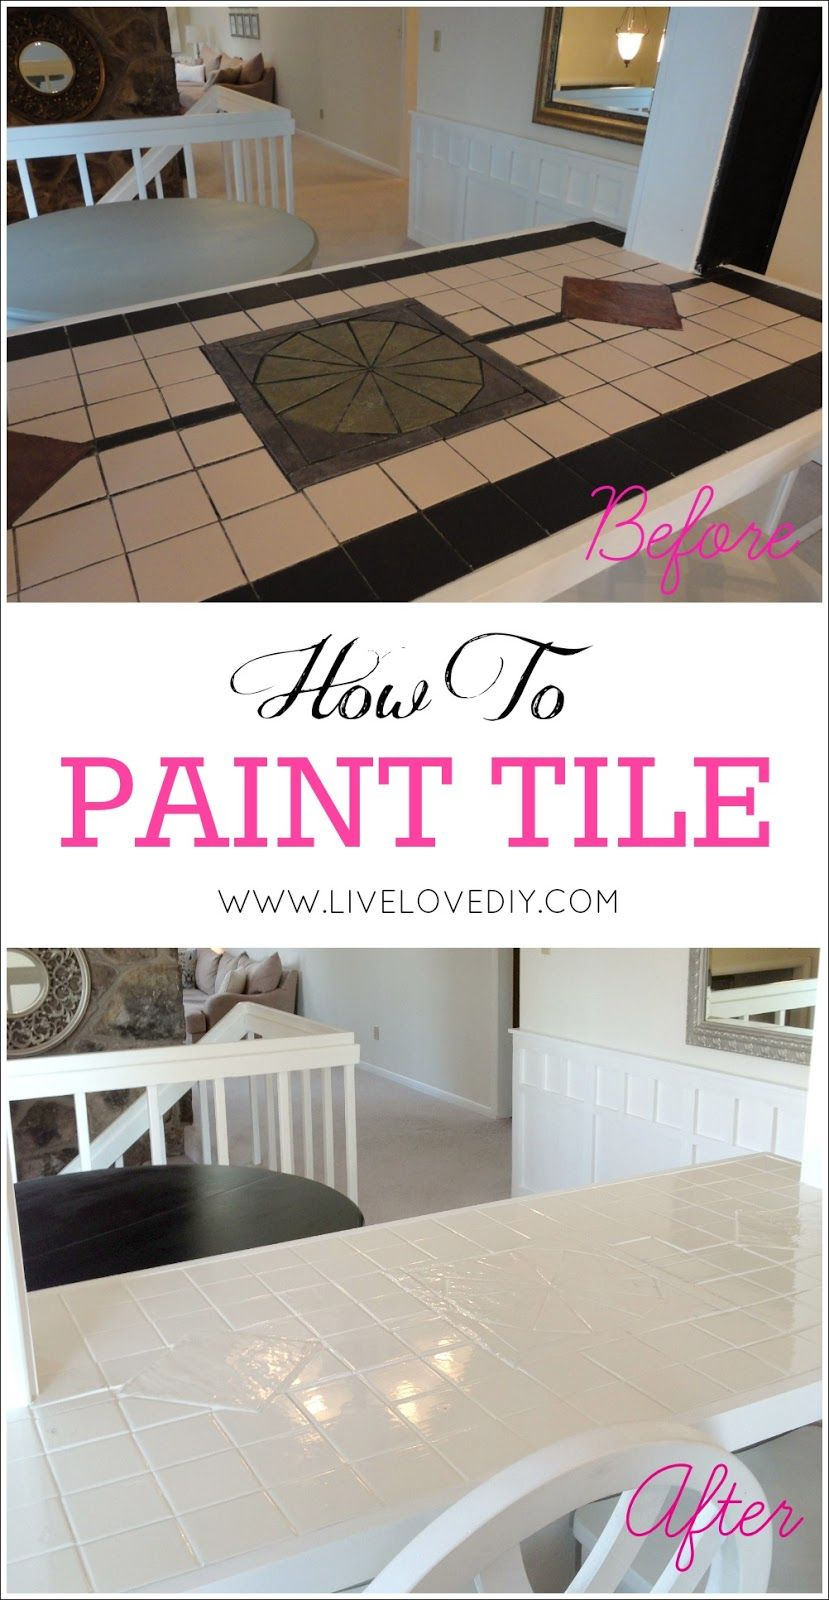 How To Paint Tile Countertops This Is So Great For Outdated Kitchens And Bathrooms